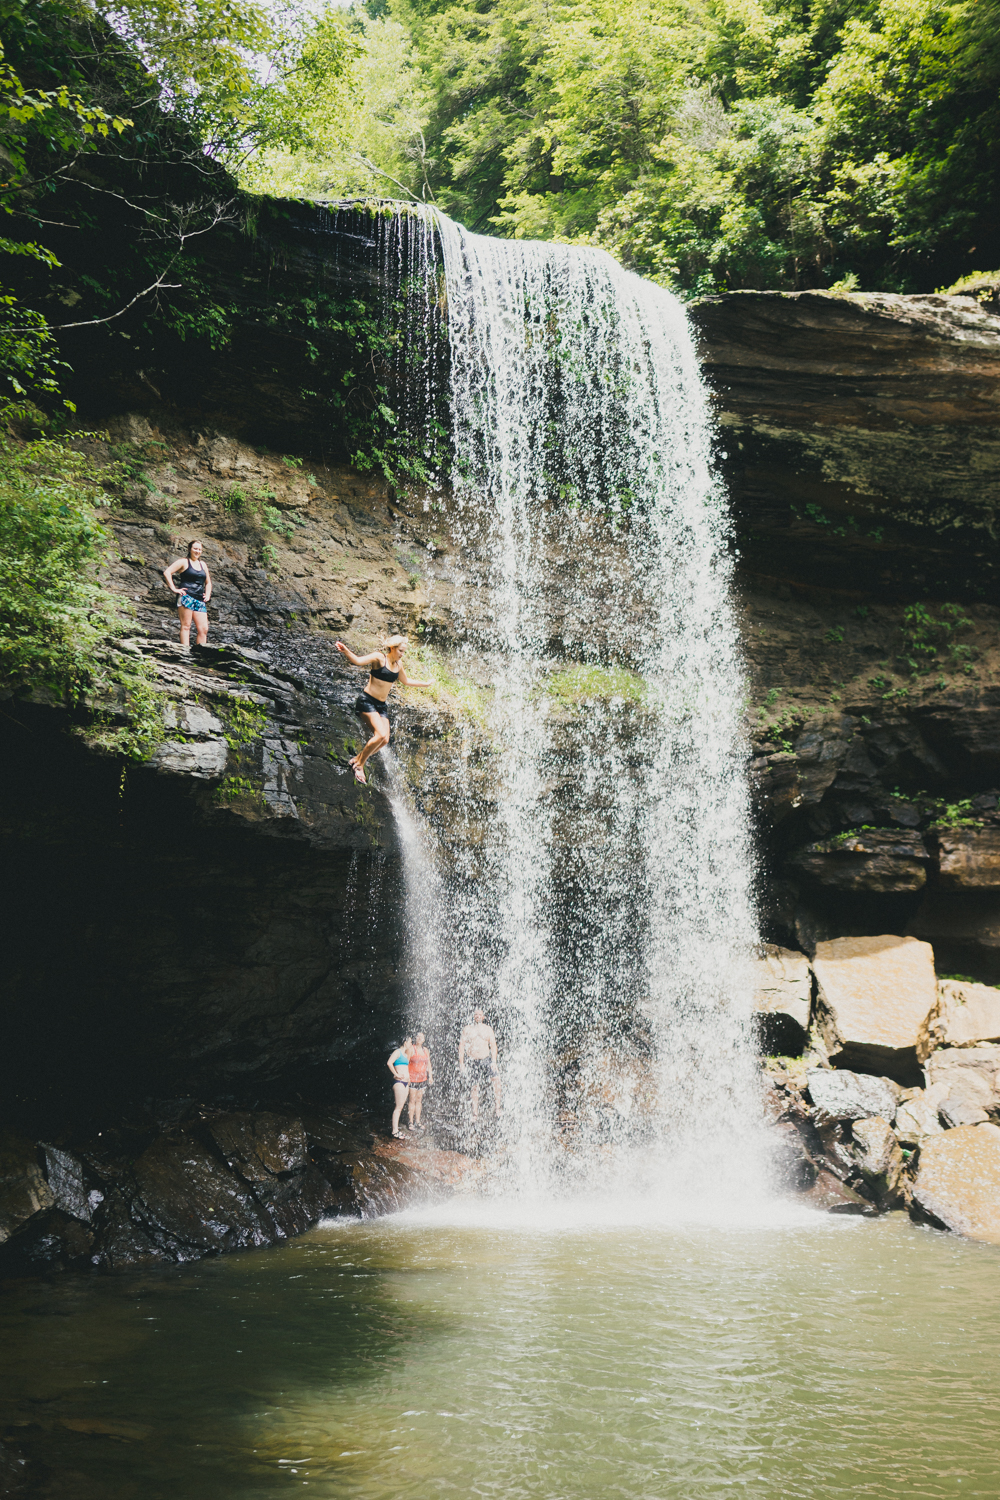 1.) Cliff Jumping at Greeter Falls